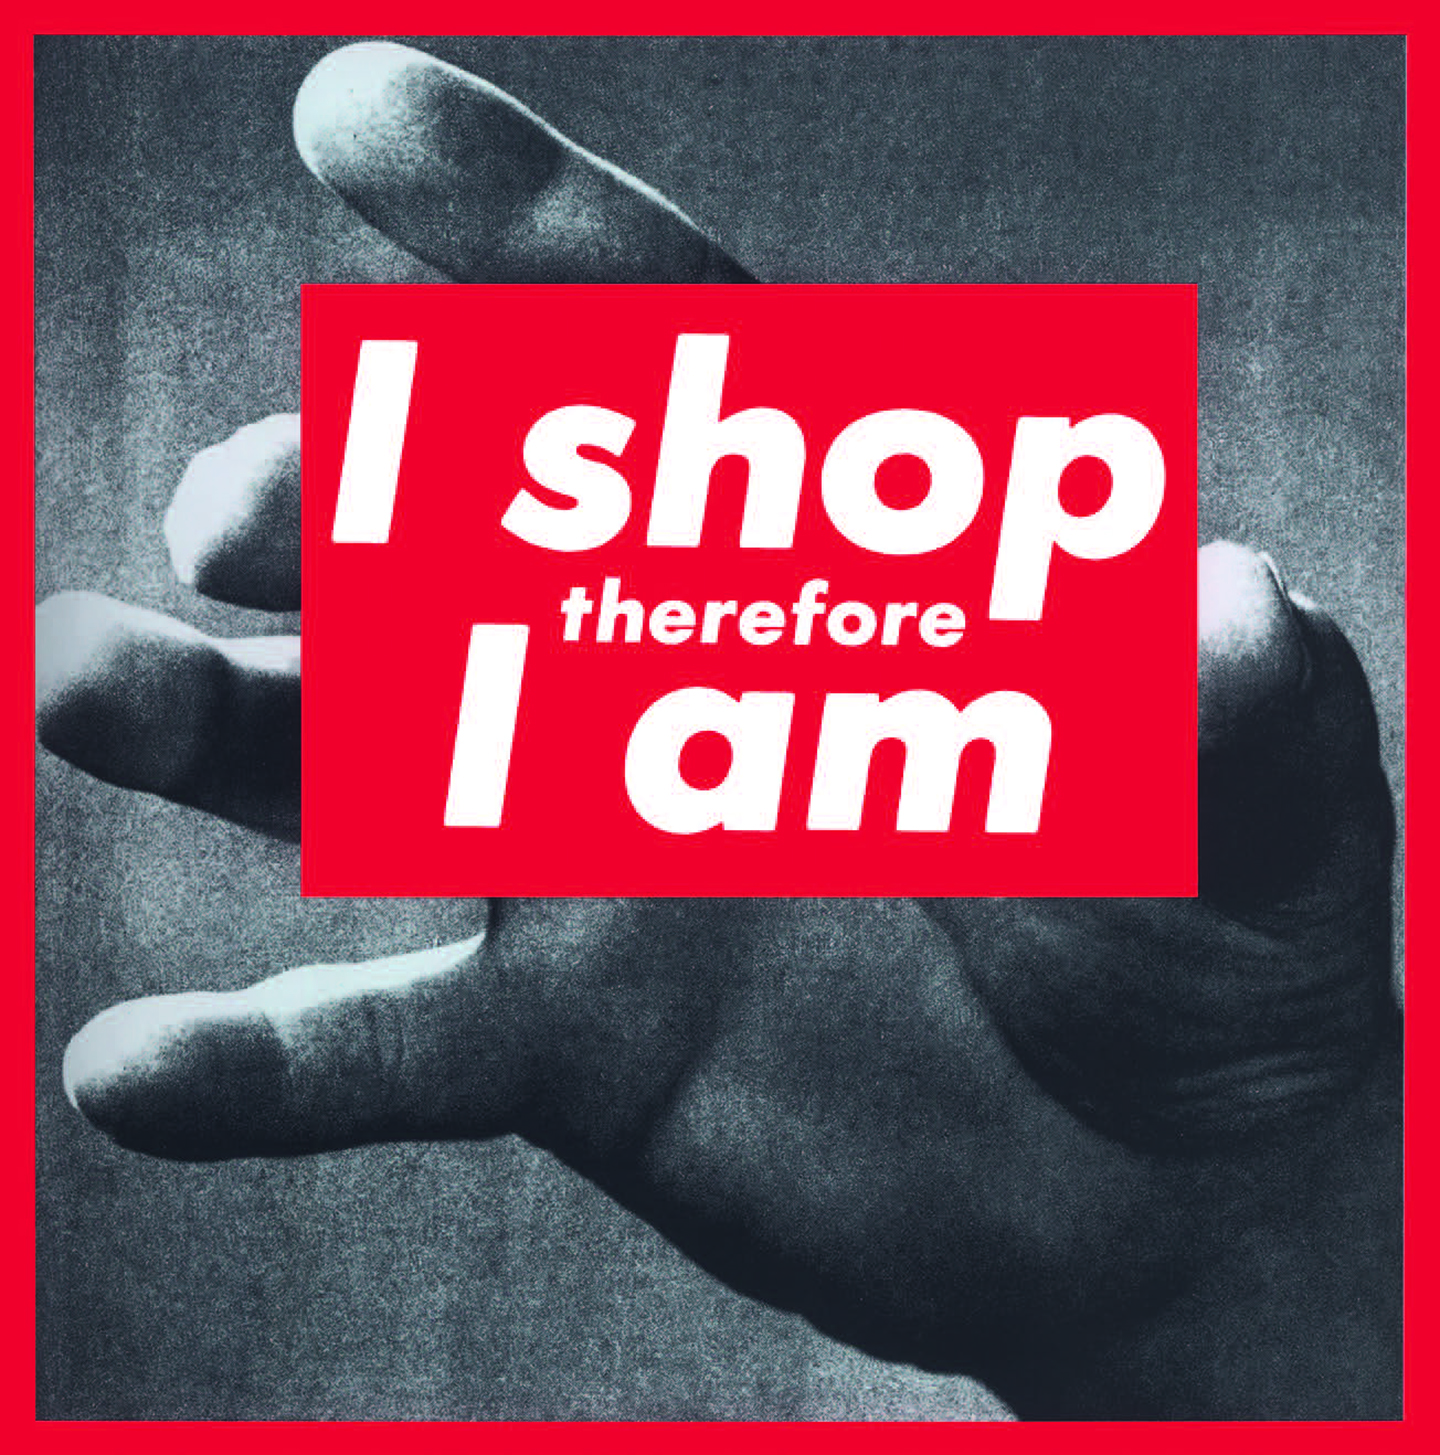 Barbara Kruger, Untitled (I shop therefore I Am), 1987. Courtesy: Sprüth Magers, Berlin/London